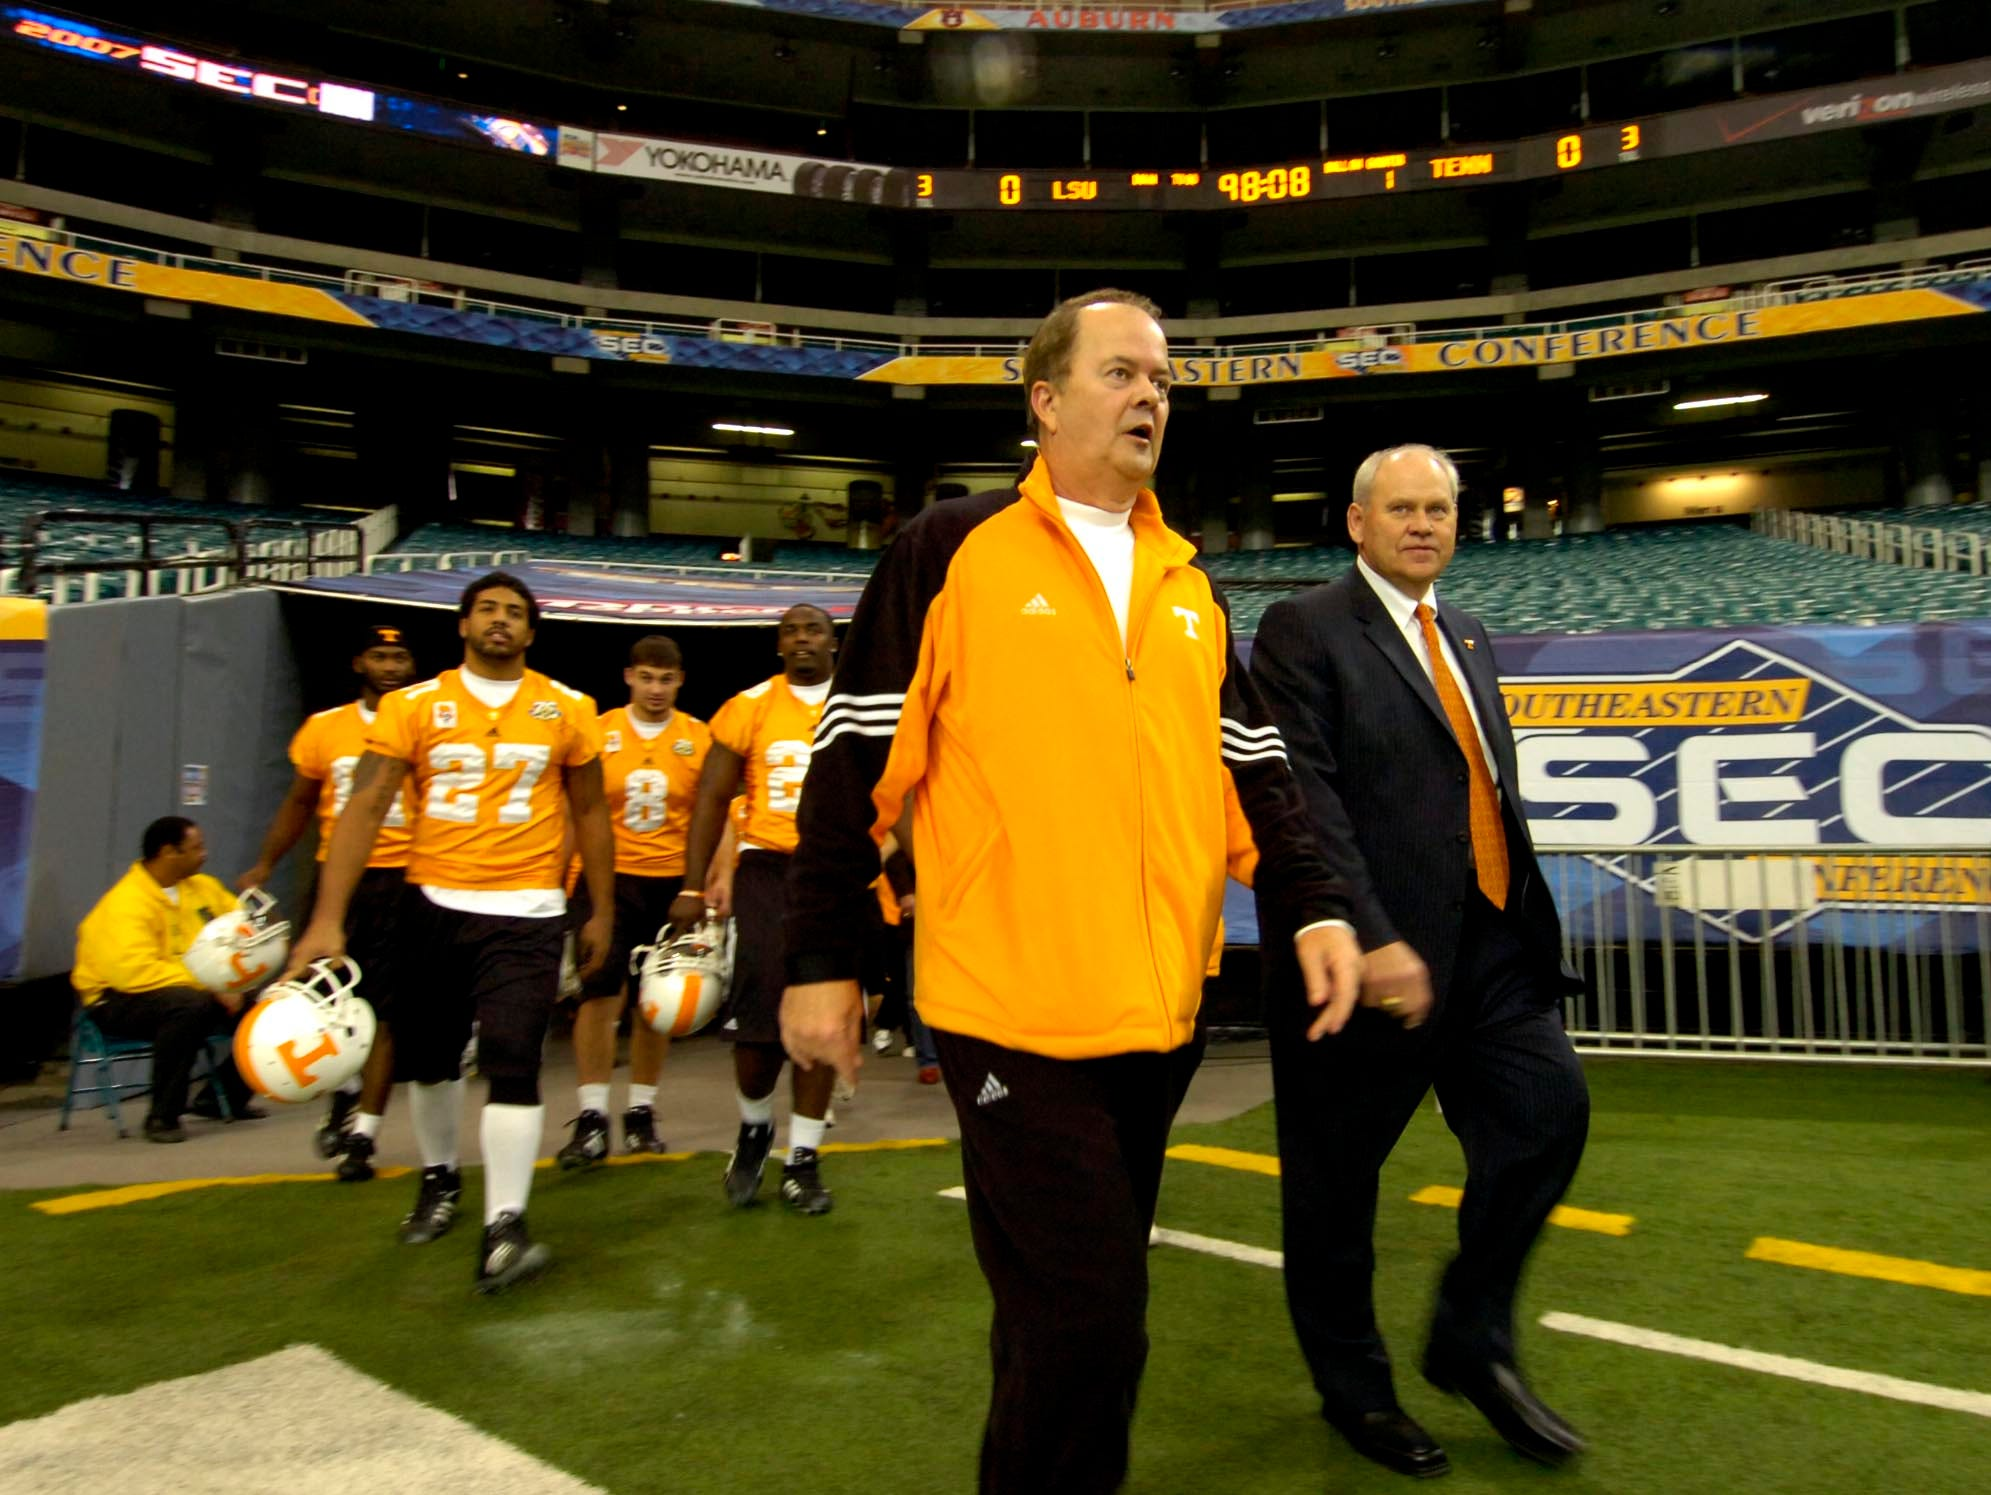 frisec3.MP    MICHAEL PATRICK/NEWS SENTINEL      The University of Tennessee football team led by David Cutcliffe, center, and head coach Phillip Fulmer, right, walk onto the field of the Georgia Dome Friday afternoon for a walk-through practice.  Tennessee plays LSU for the SEC Championship Saturday at 4 p.m.